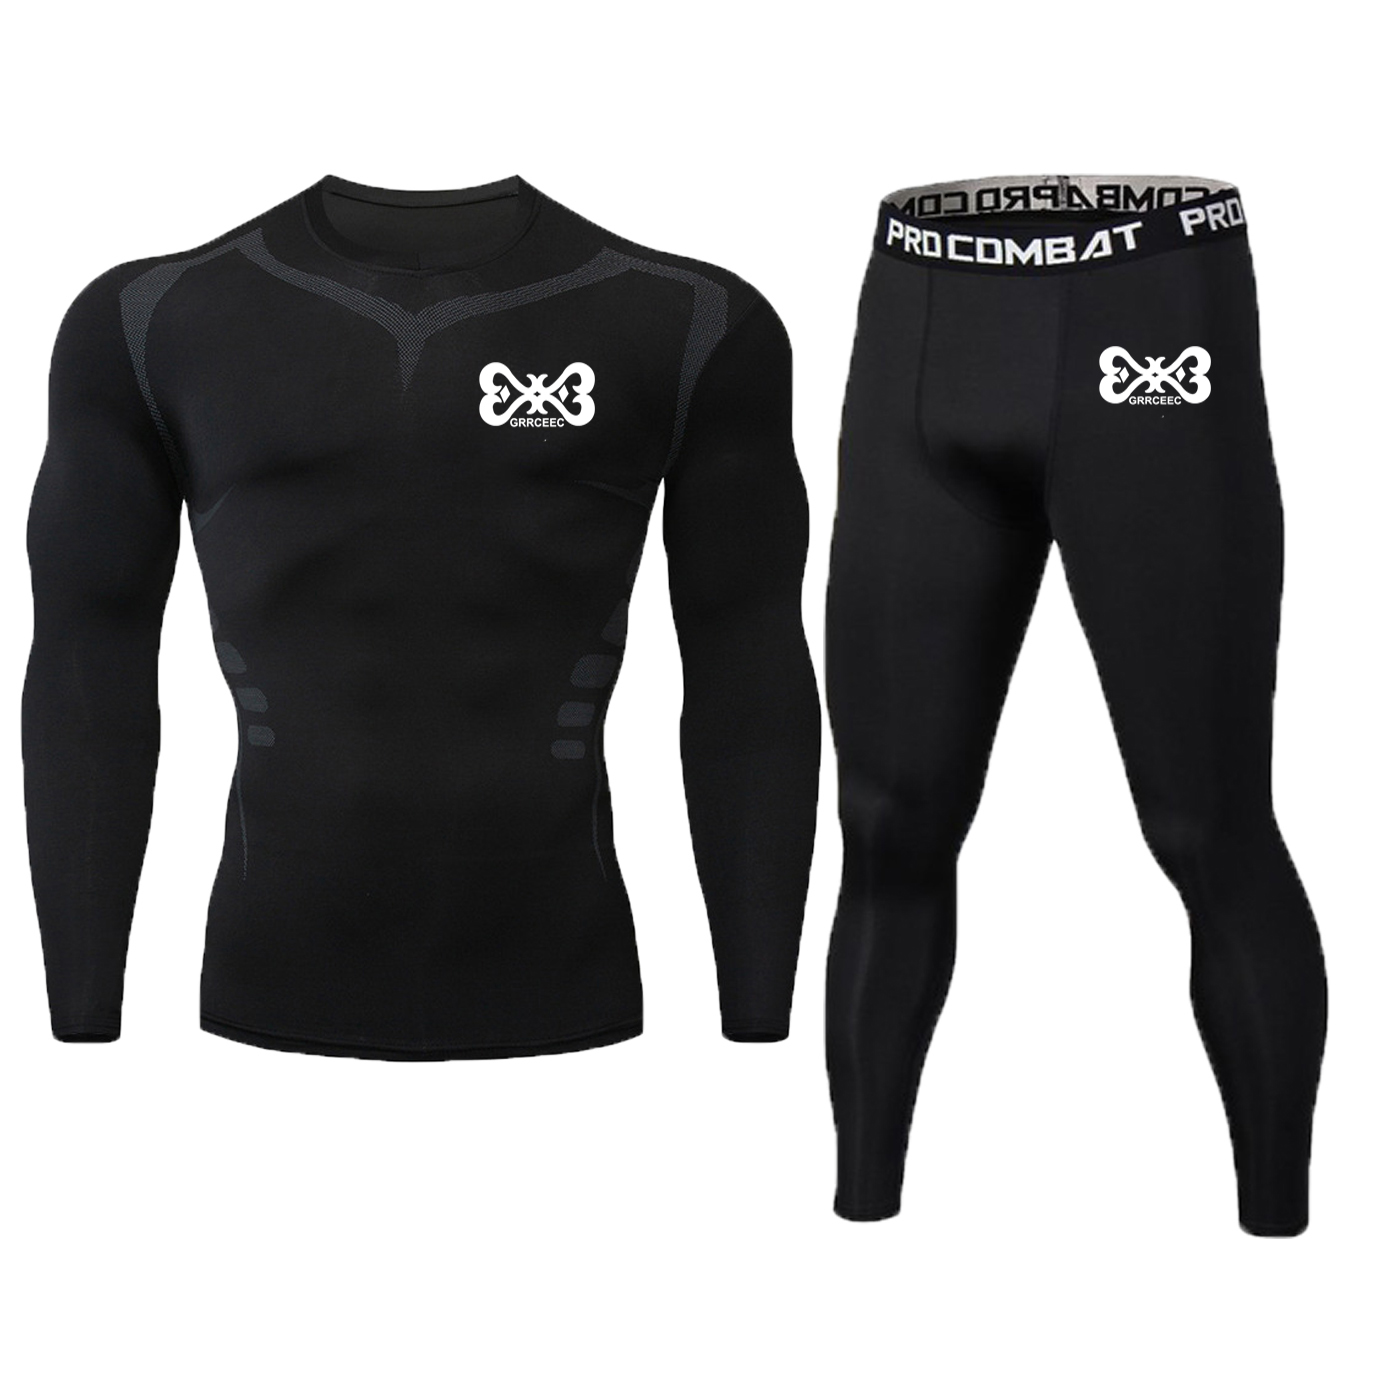 New Printing Long Sleeve + Trousers Men's T-shirt Compression Training Running Running Fitness Clothing Brand Suit T-shirt MMA